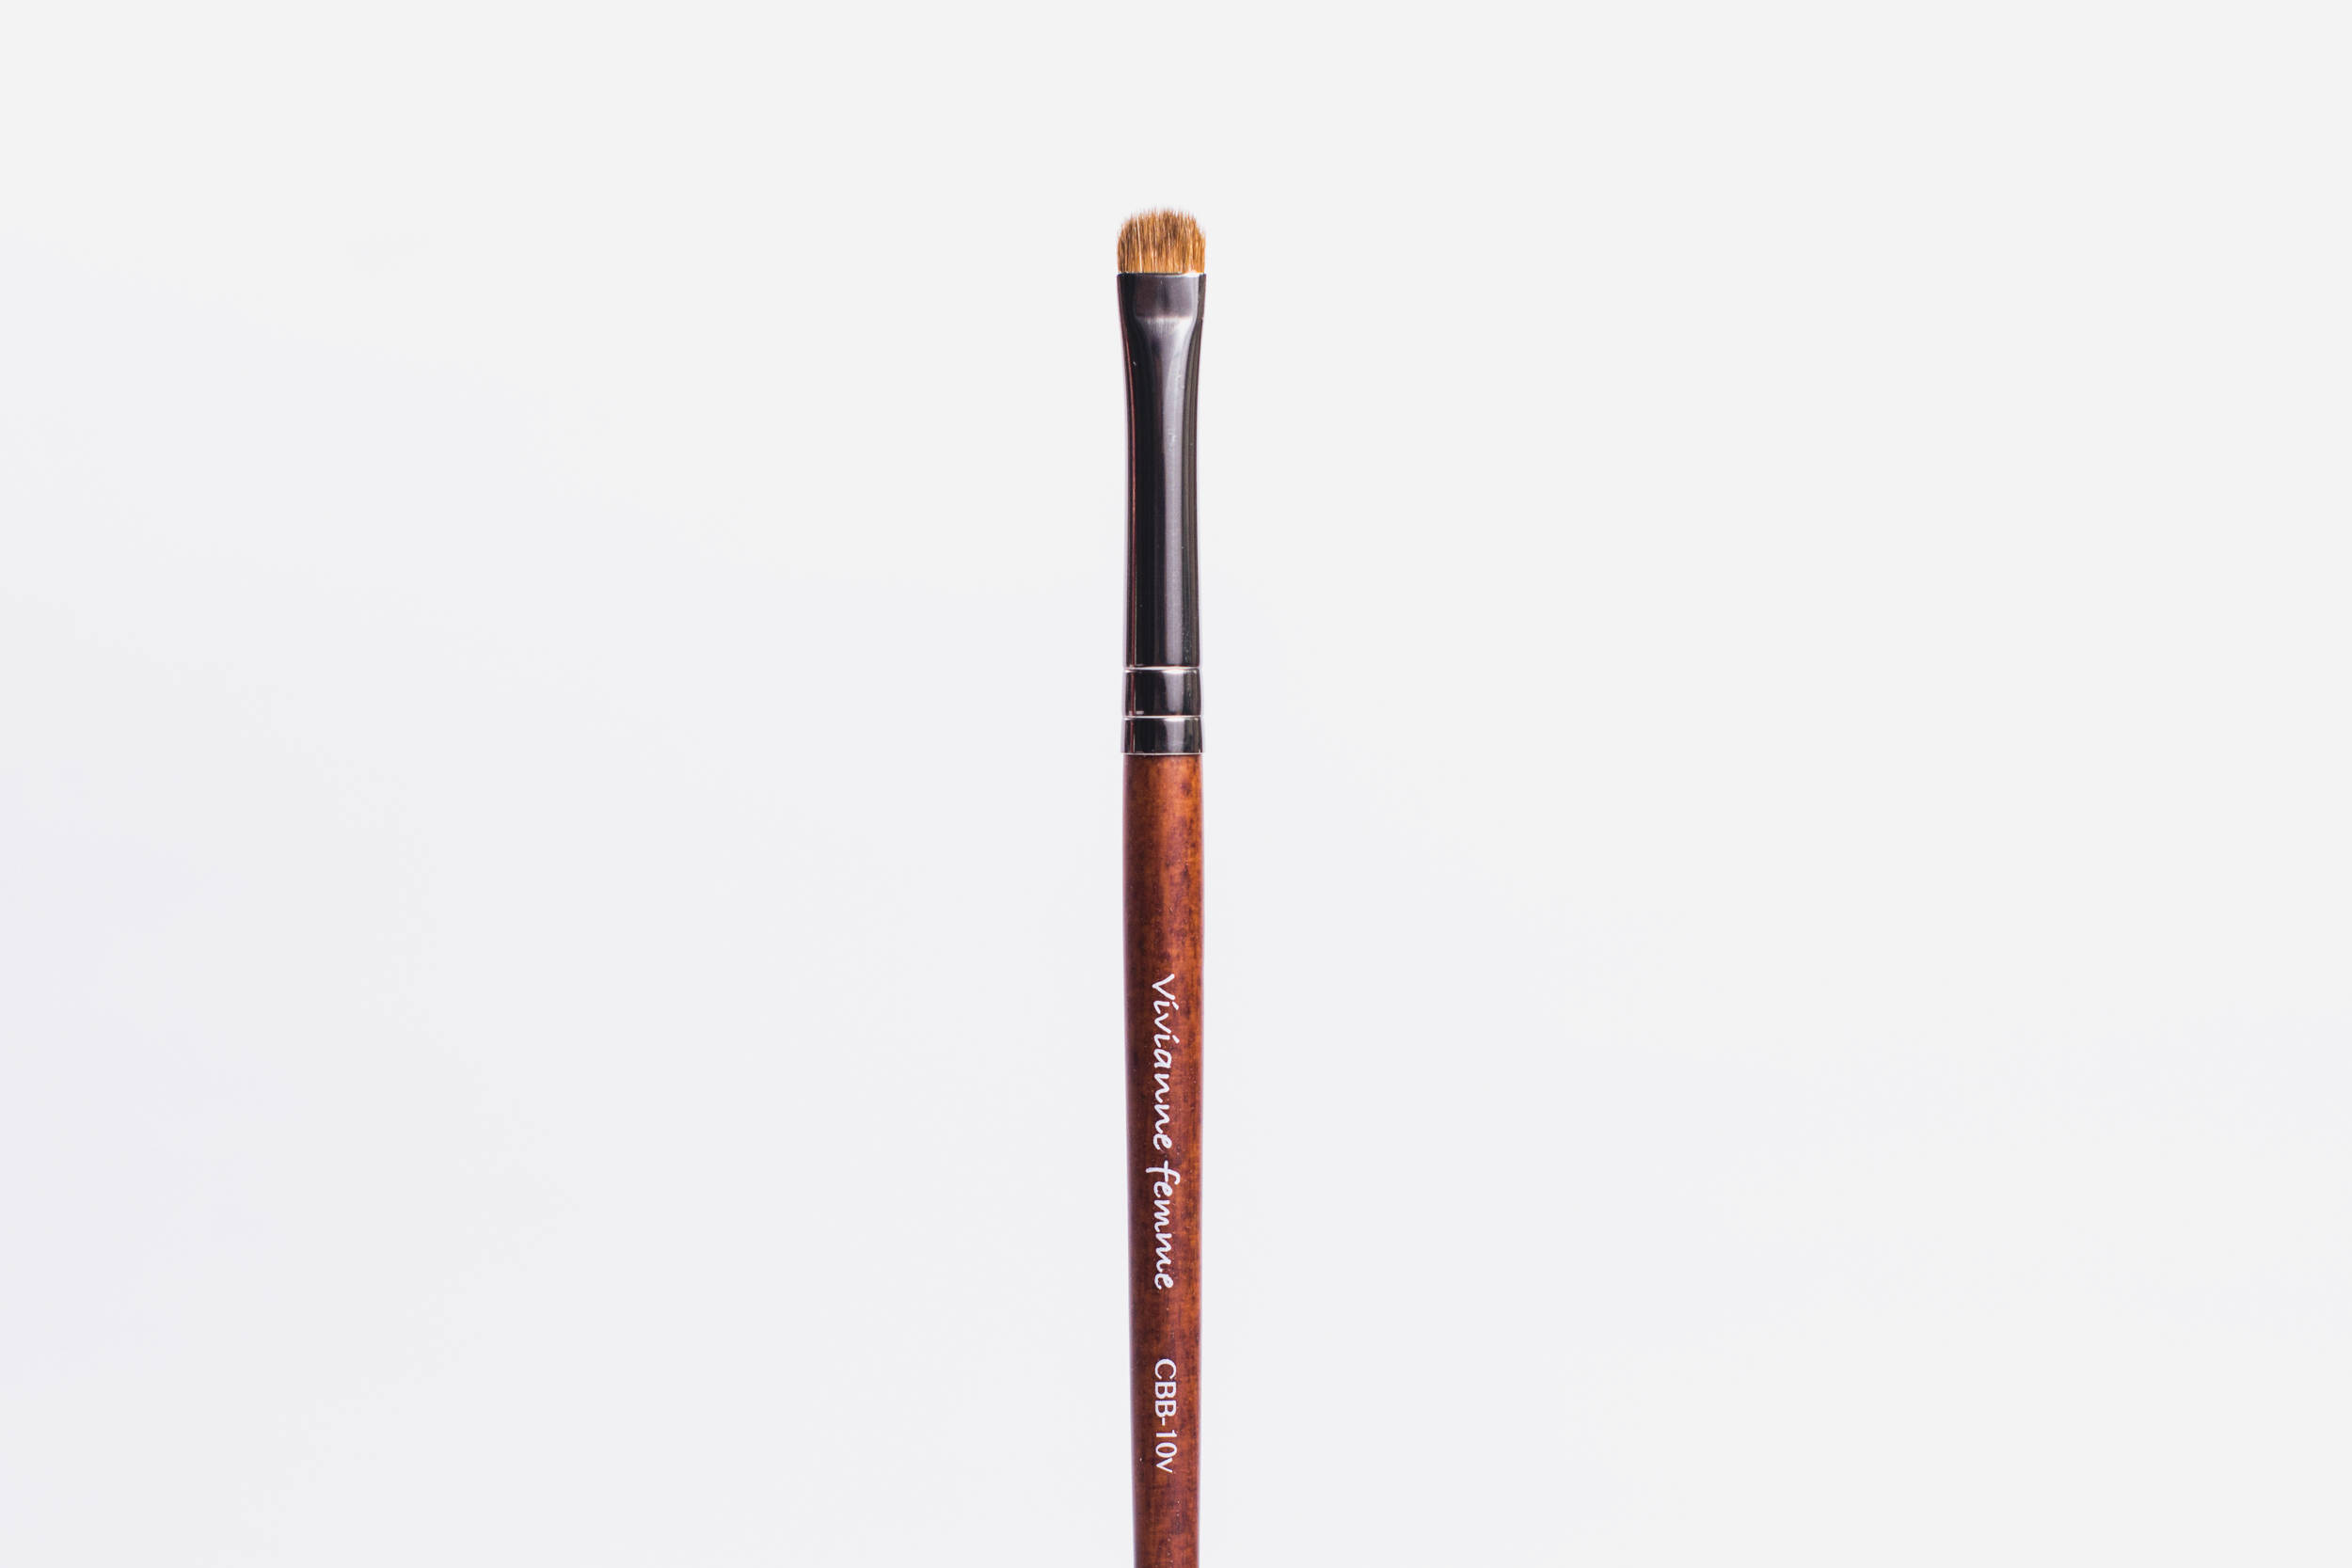 Vivianne Femme Eyeshadow Detail Brush (P495)